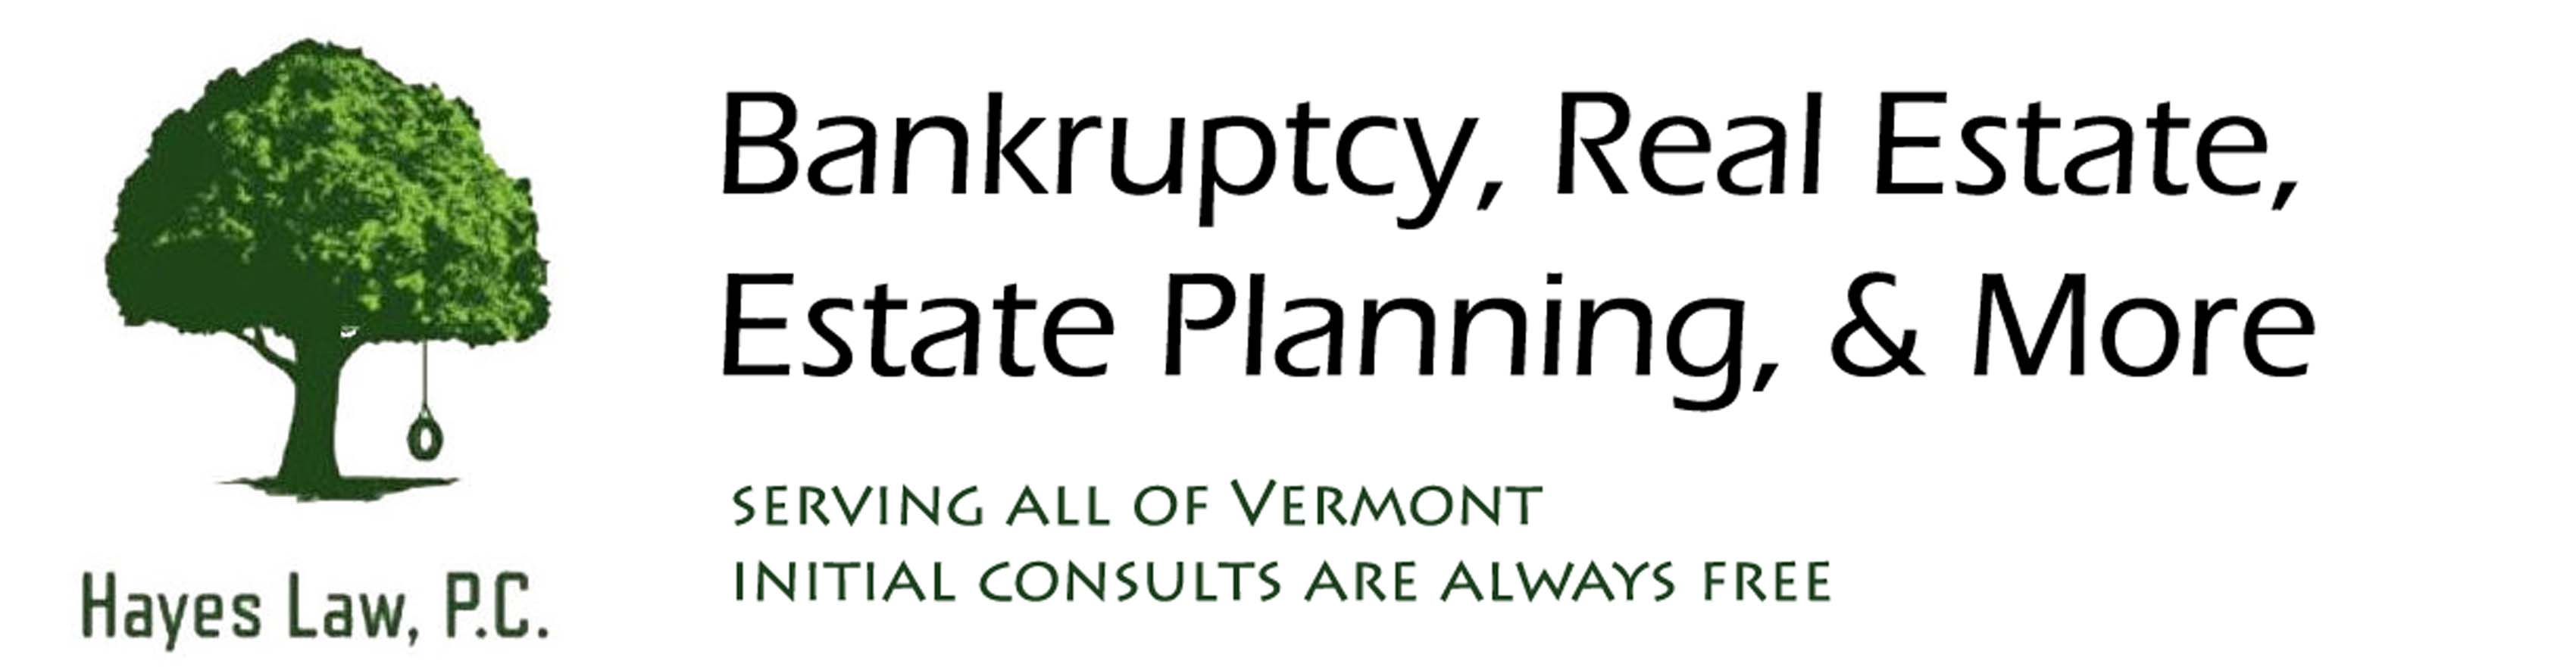 Bankruptcy, Real Estate, Estate Planning, and more.